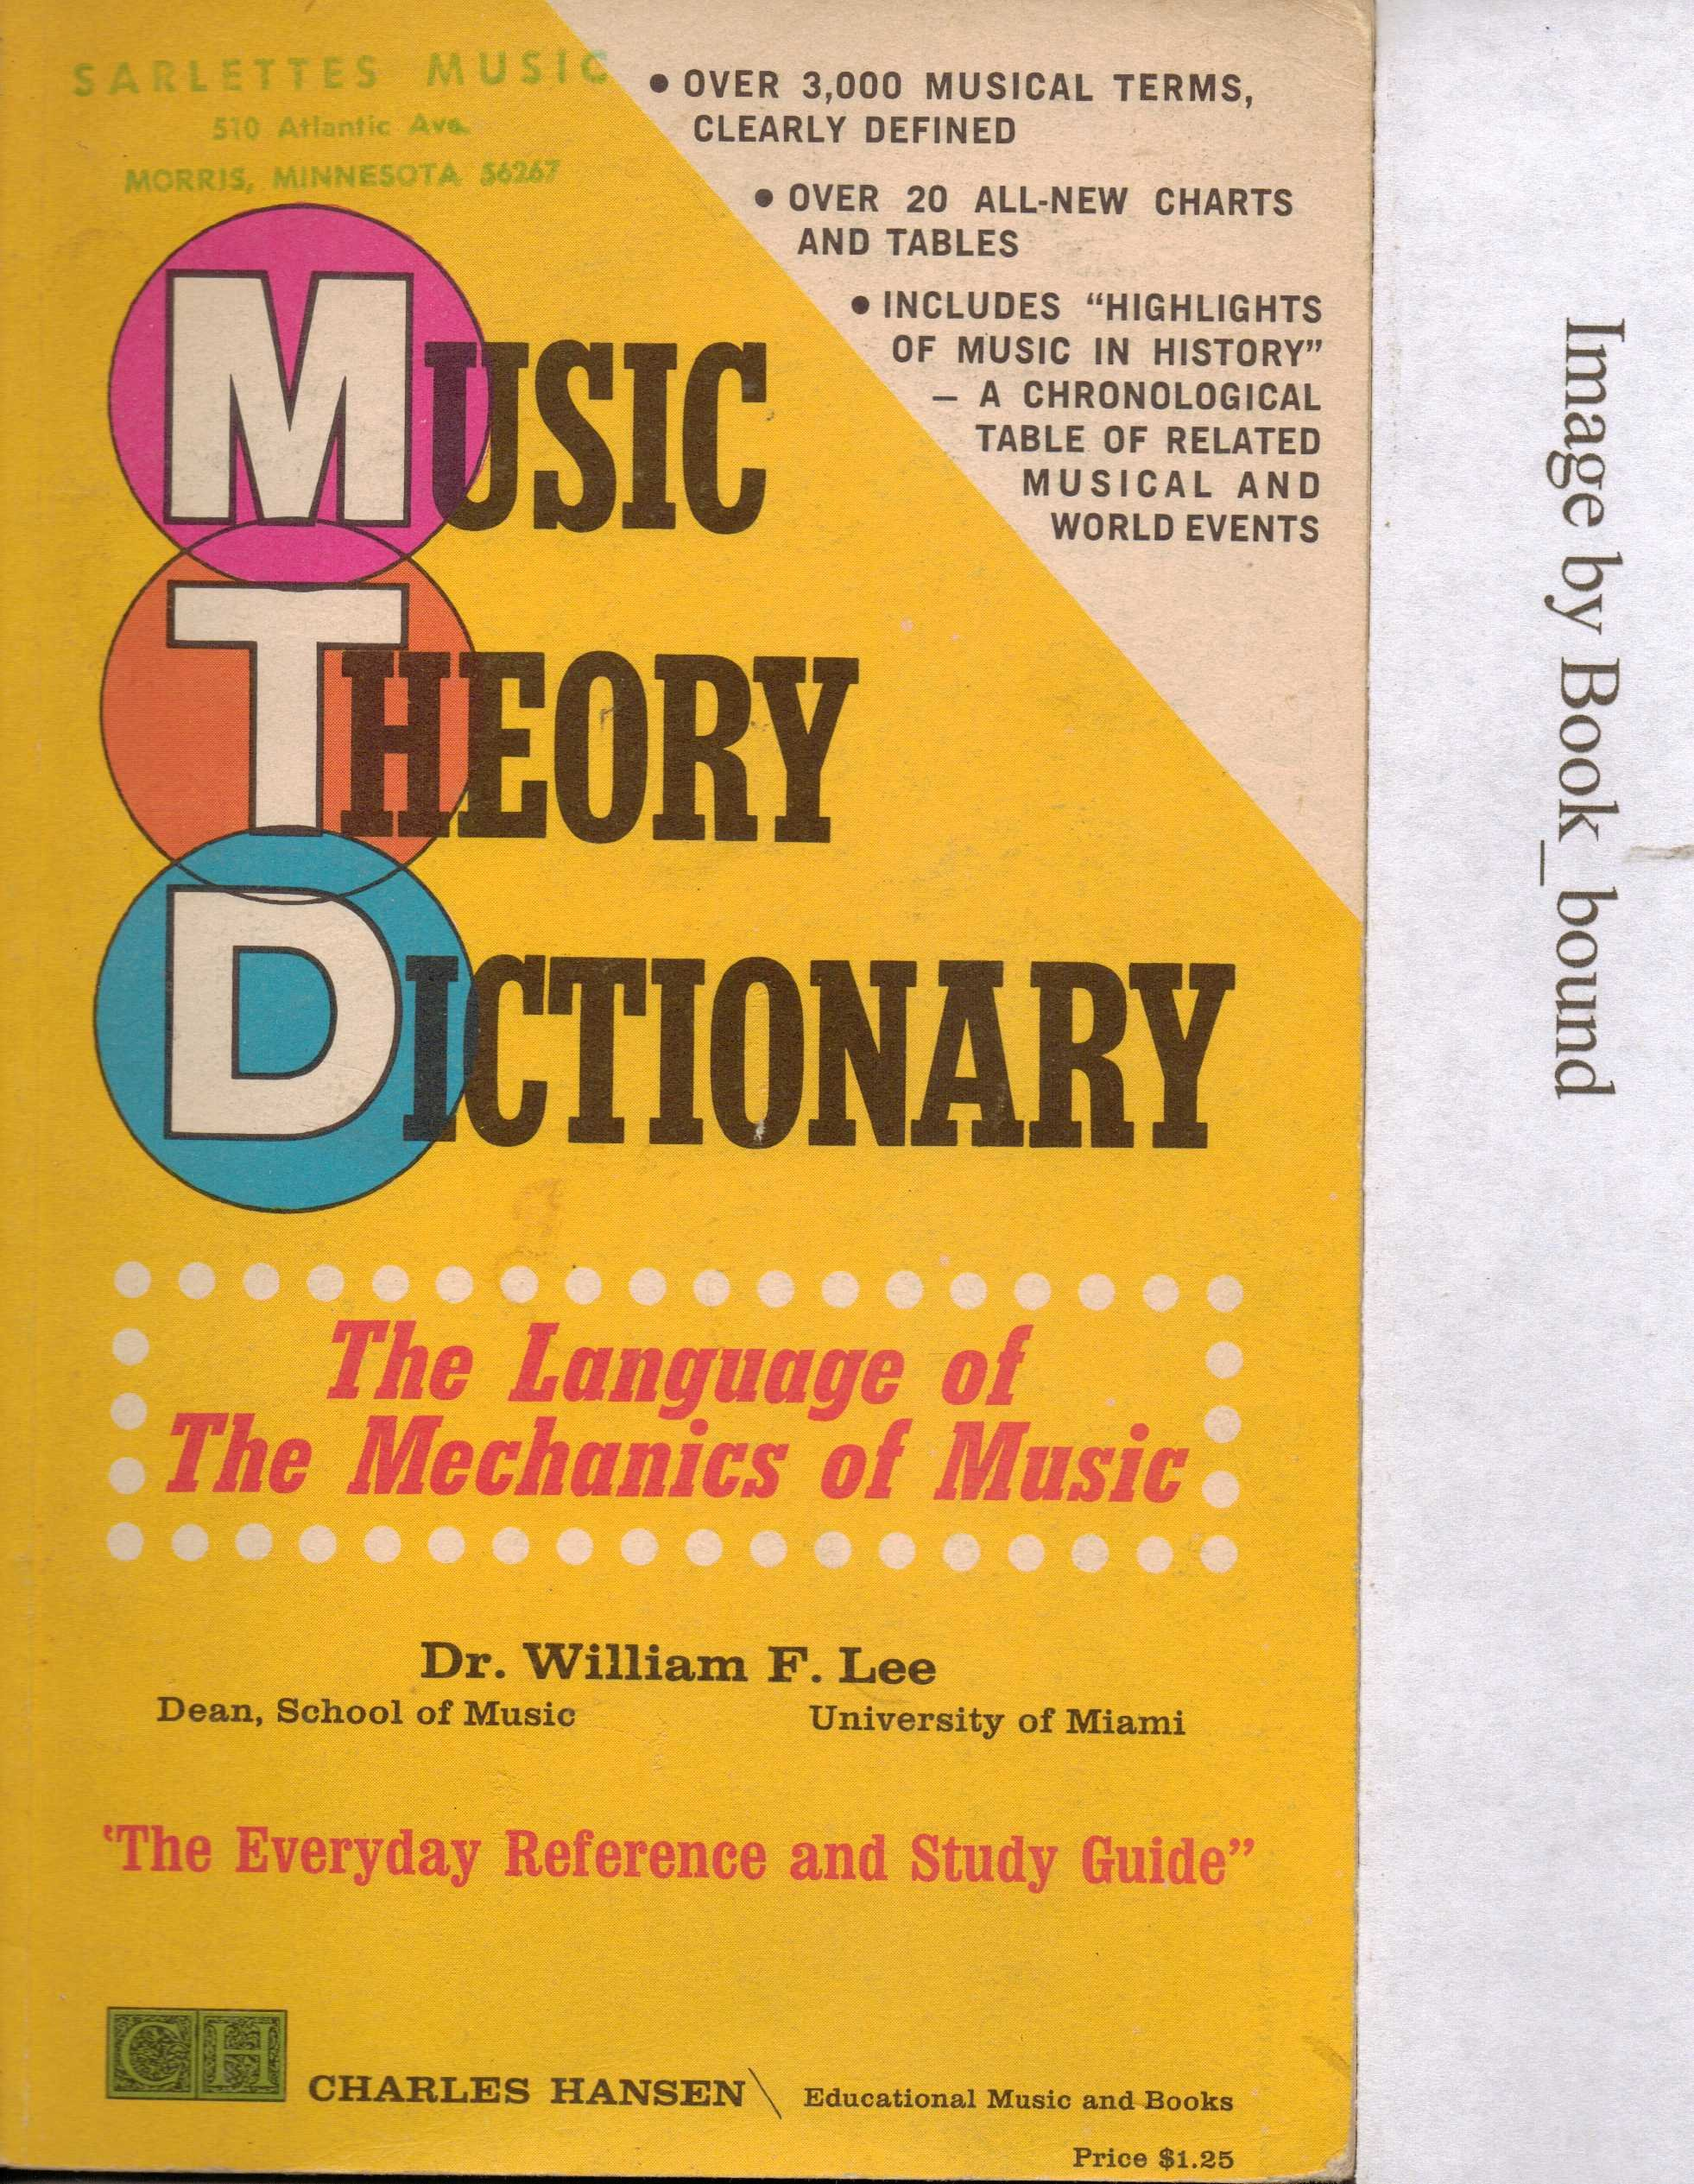 Music Theory Dictionary: The Language of the Mechanics of Music by Charles Hansen Educational Music and Books